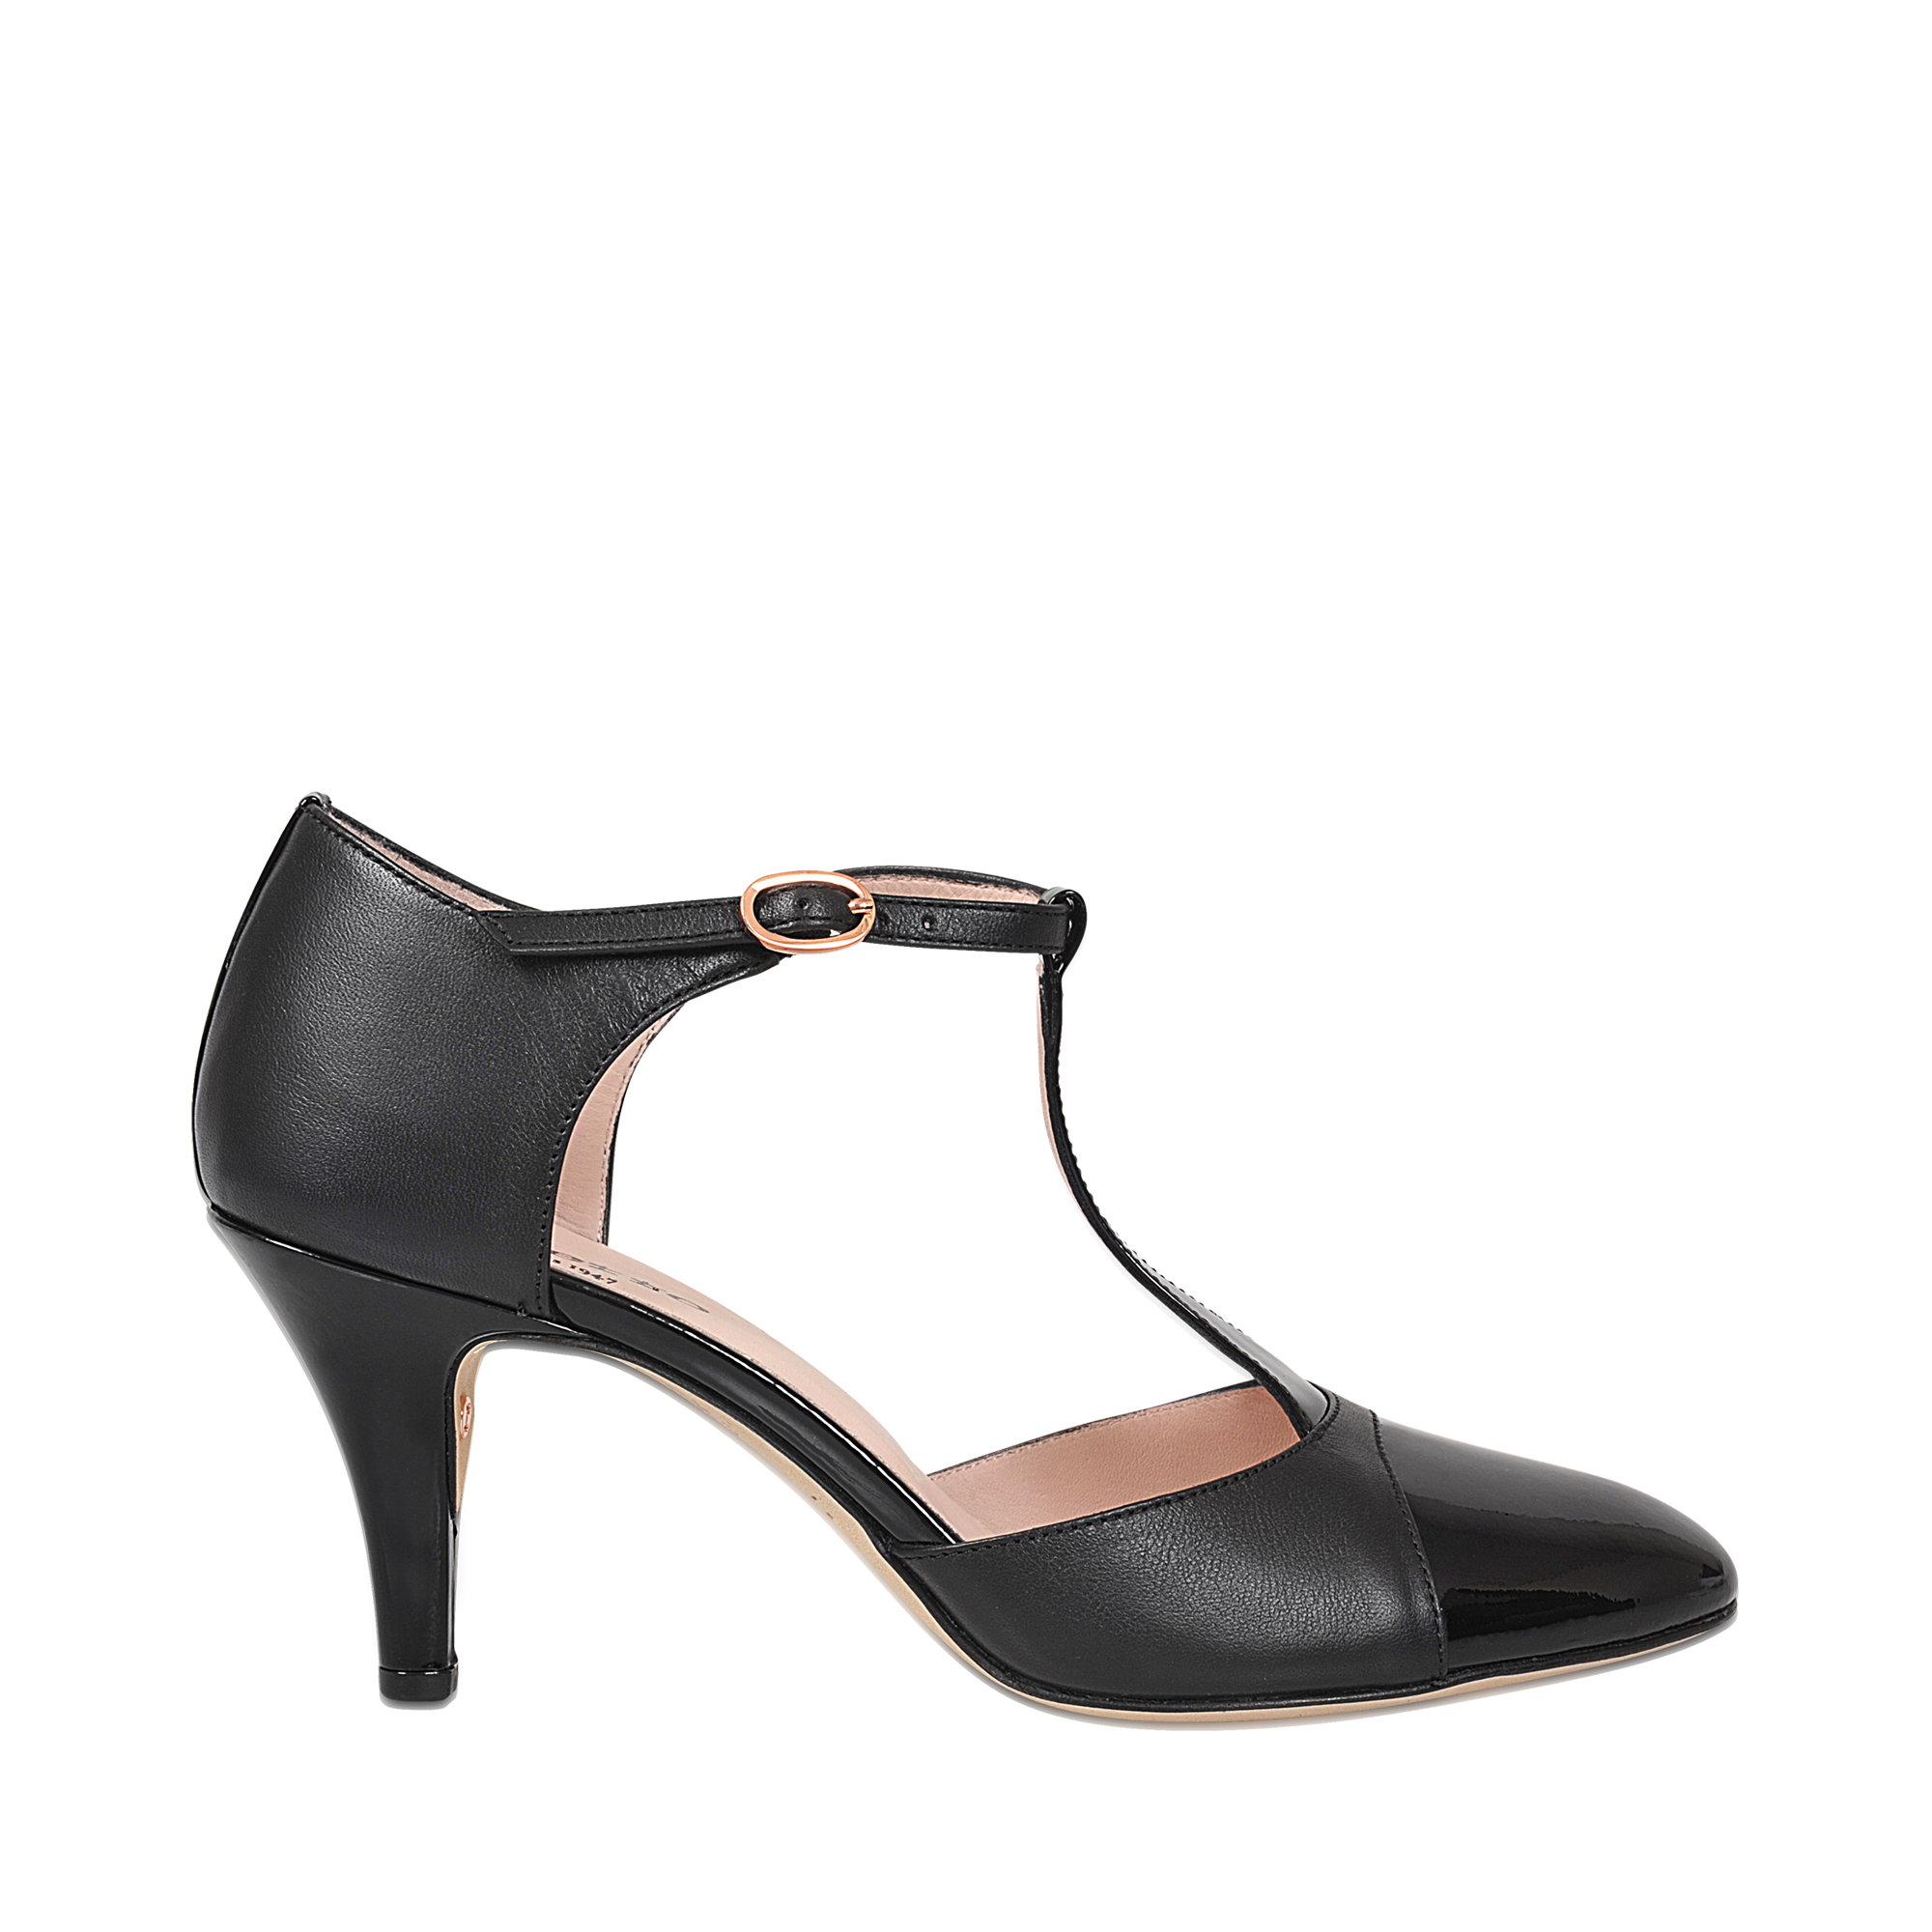 Chaussure repetto femme mariage